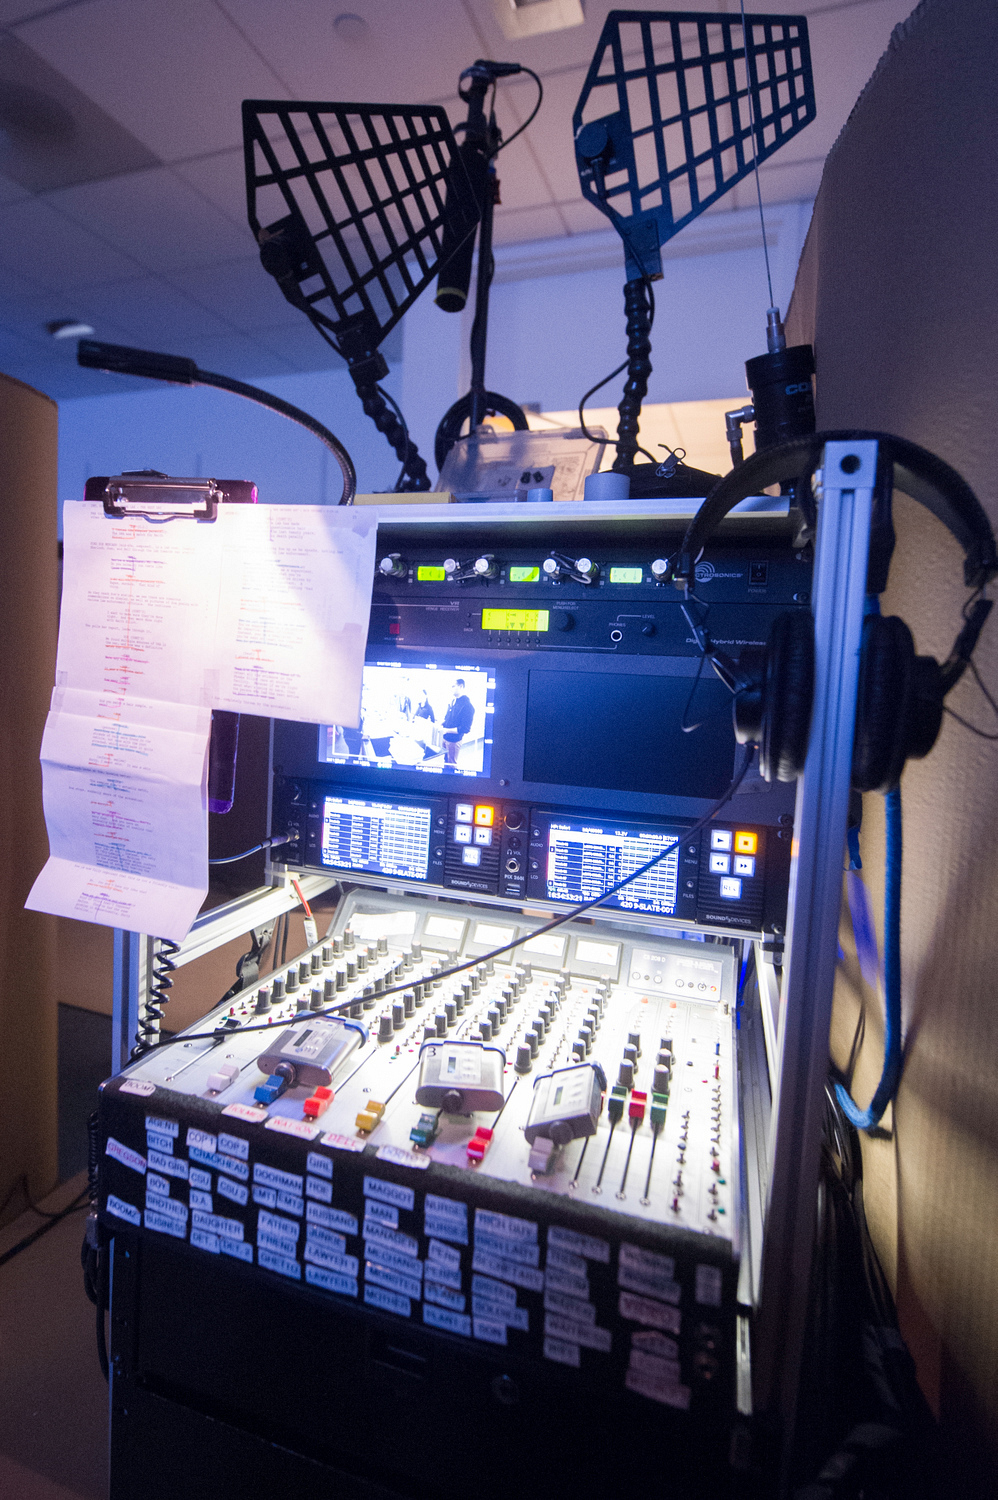 A mixing board controls all the mics on set